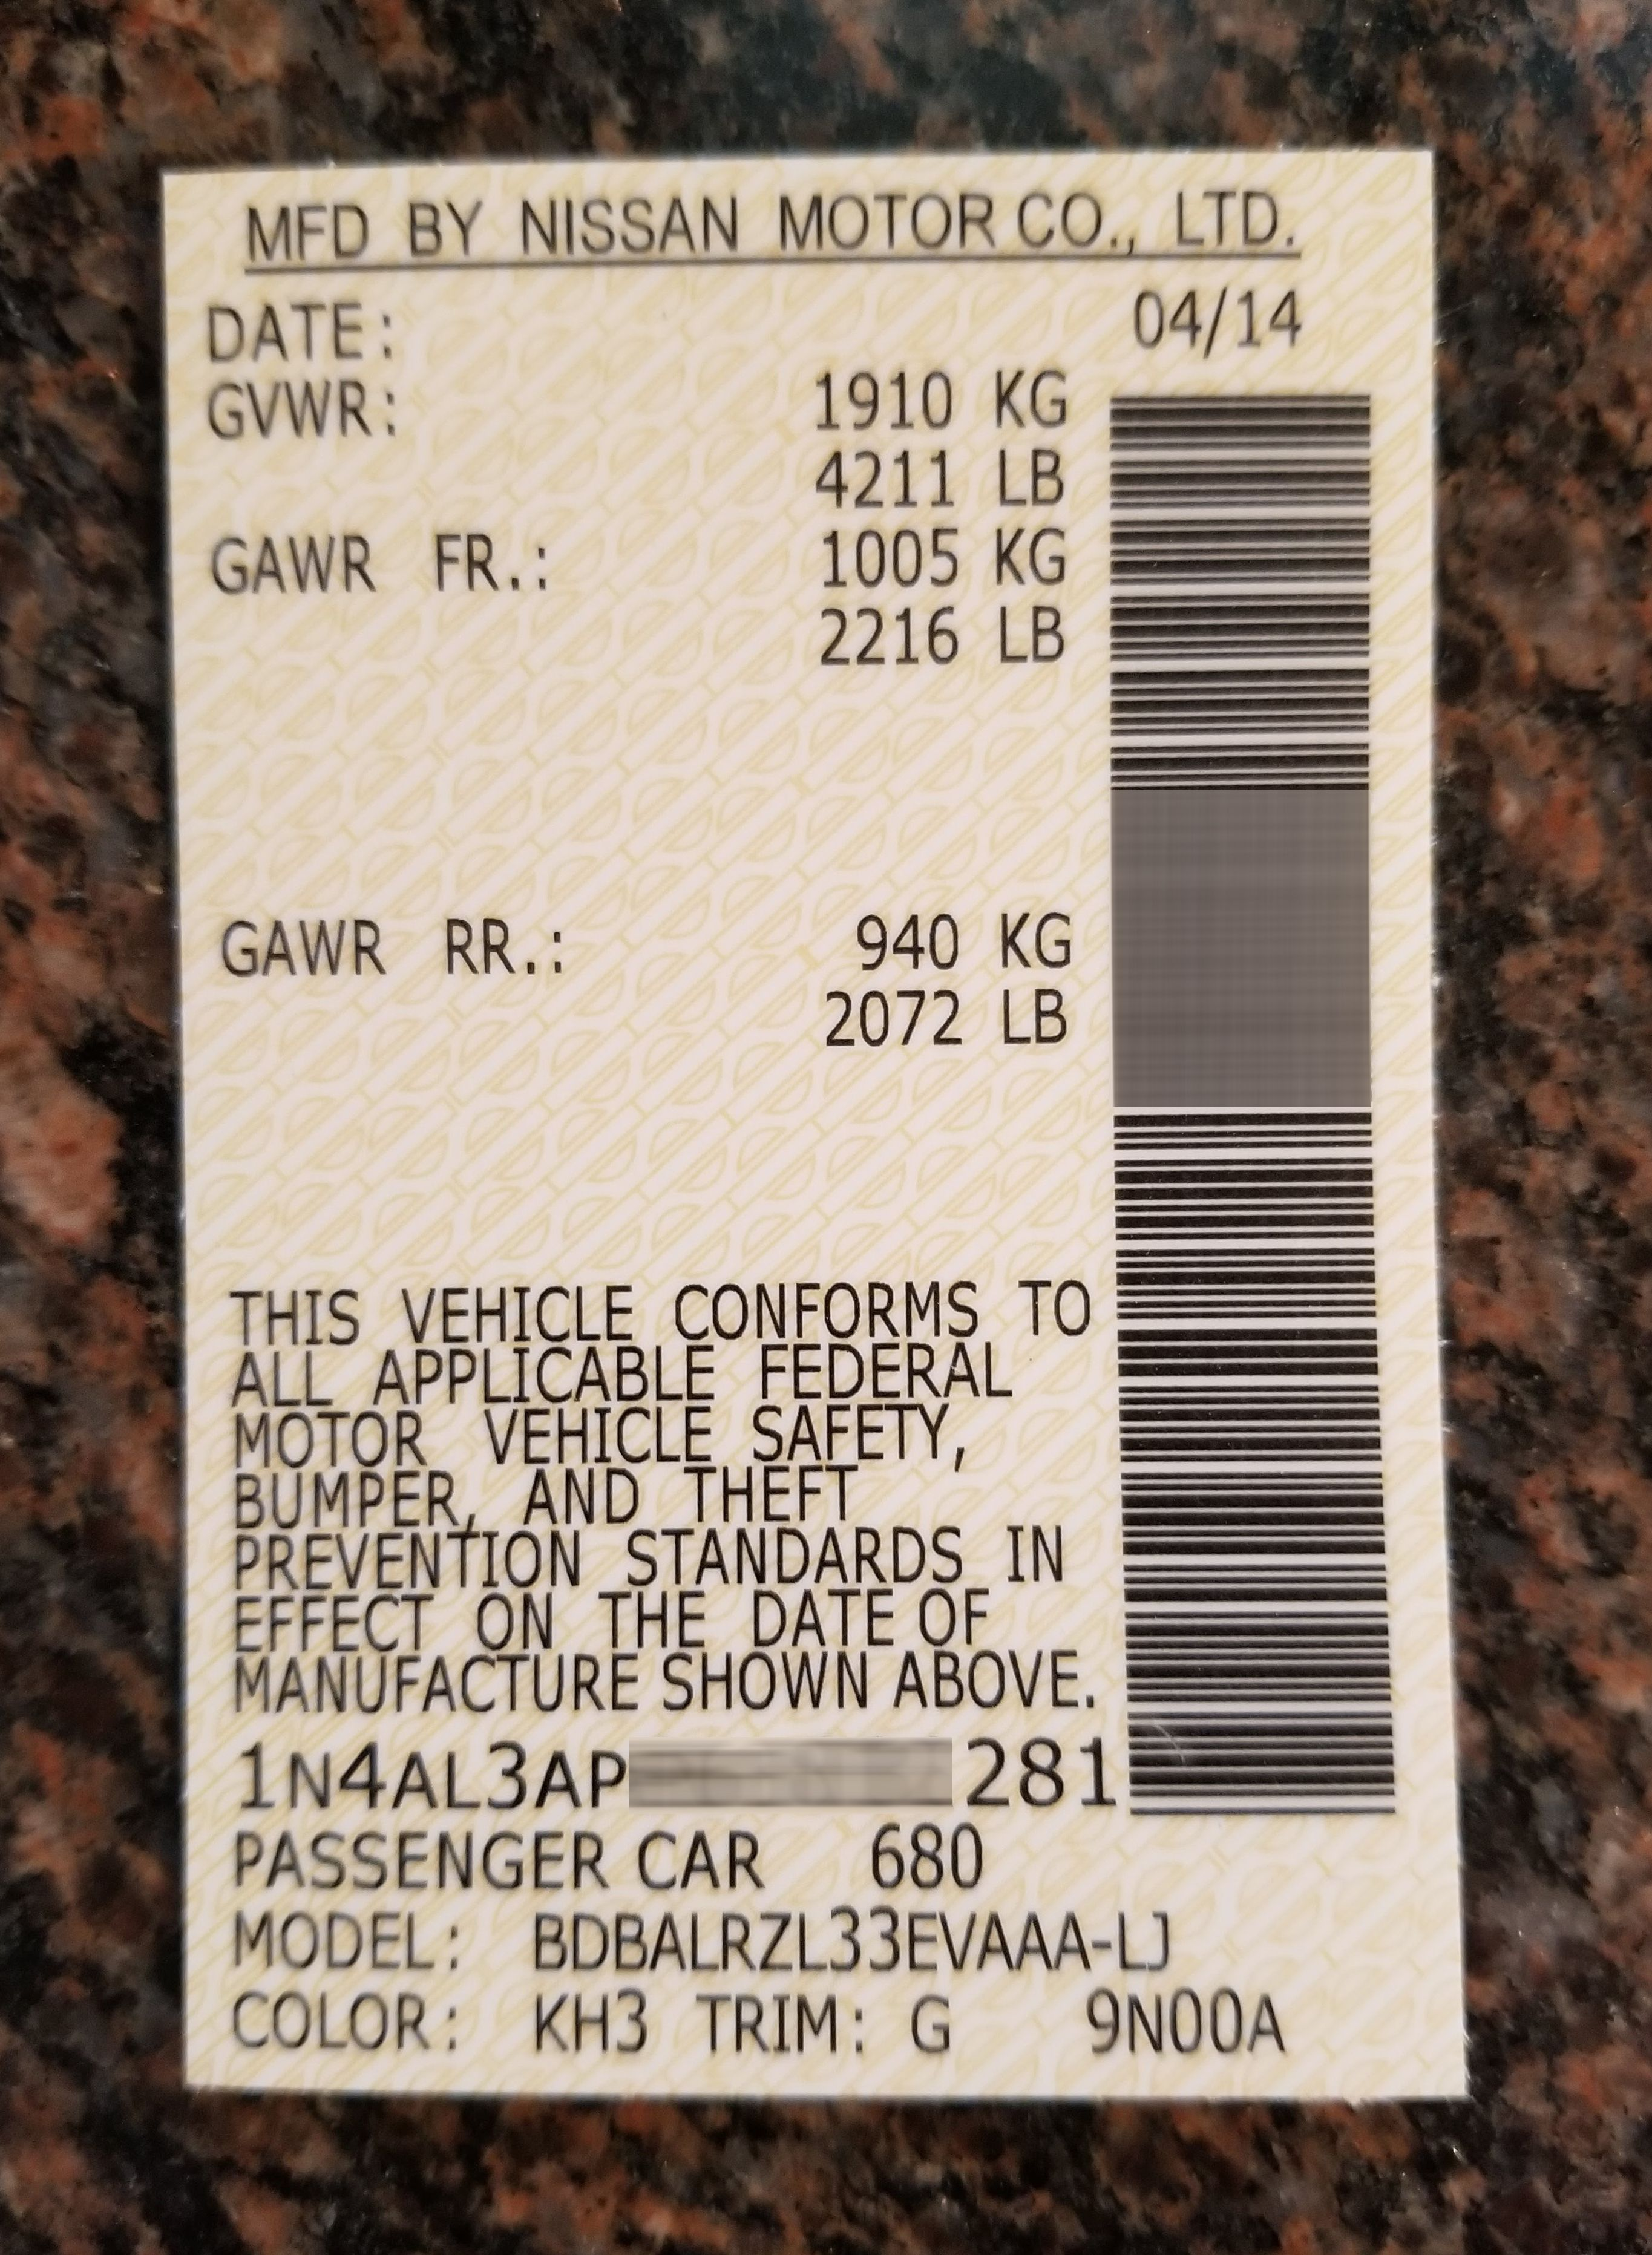 Nissan Barcode Label Nissan Motor Vehicle Safety Barcode Labels